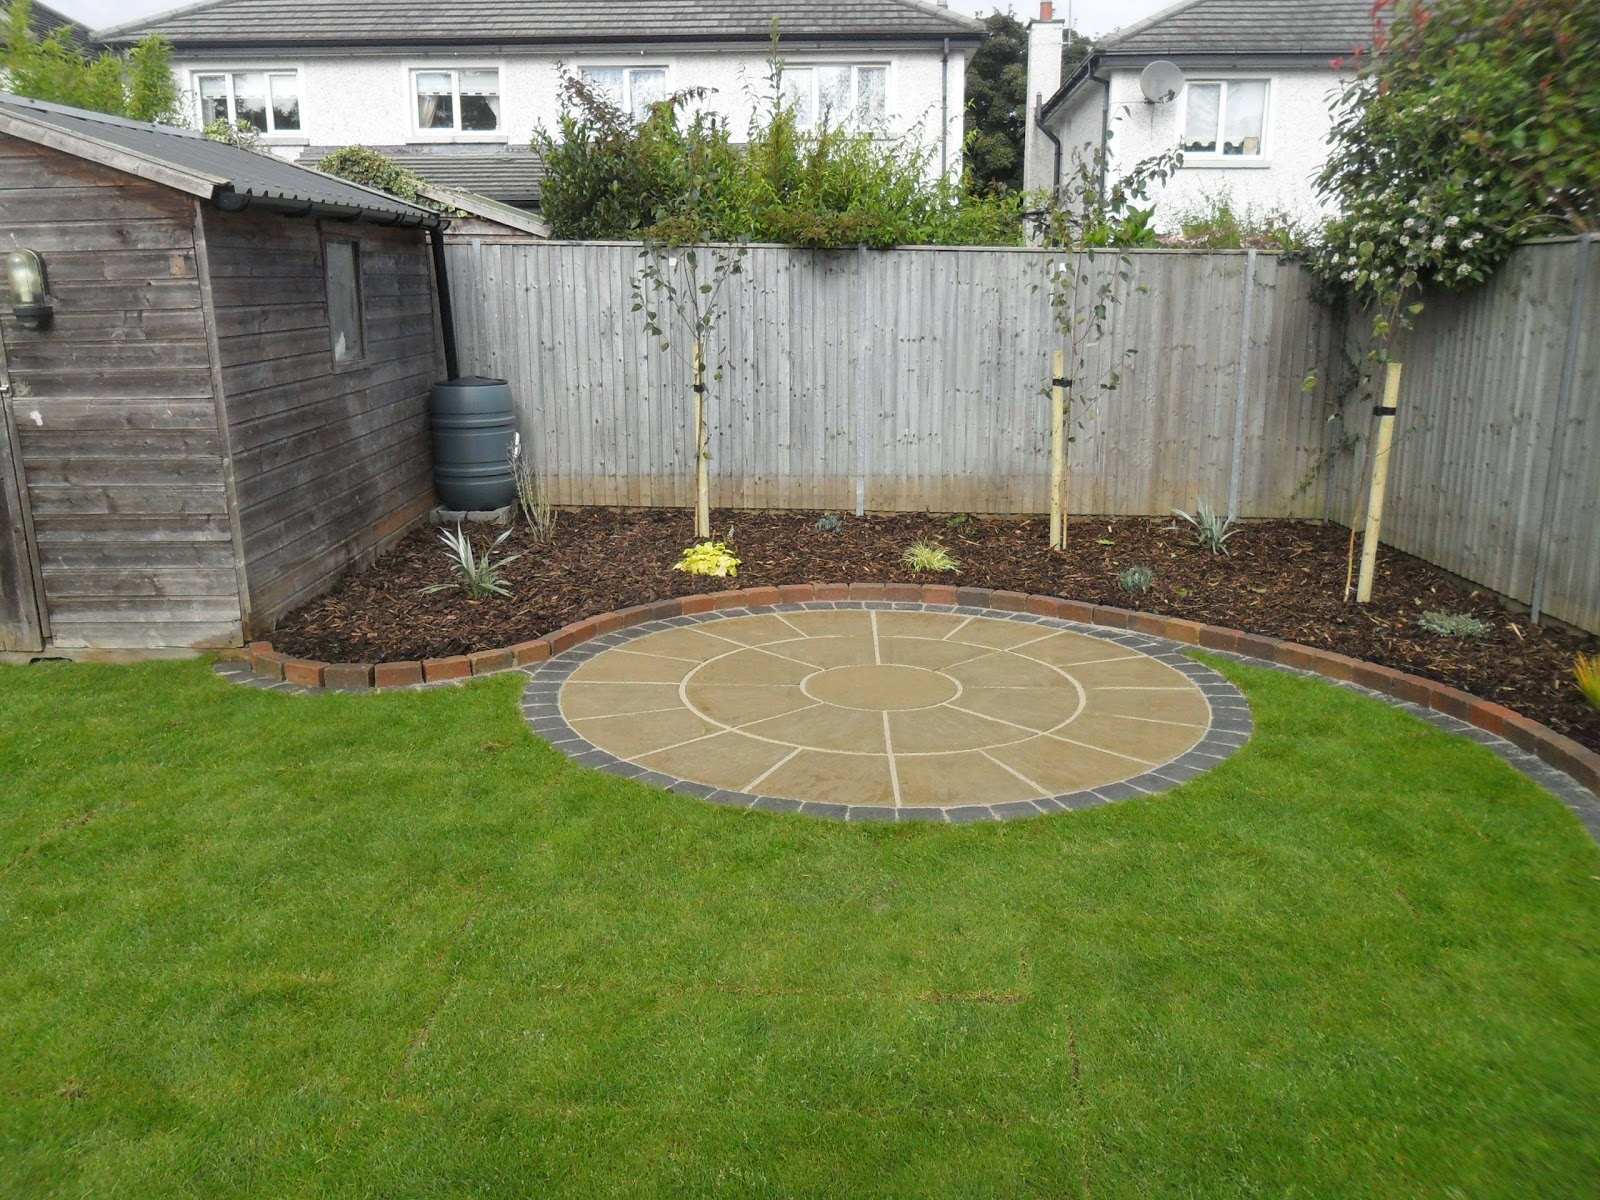 Greenart landscapes garden design construction and for Circular raised garden bed ideas